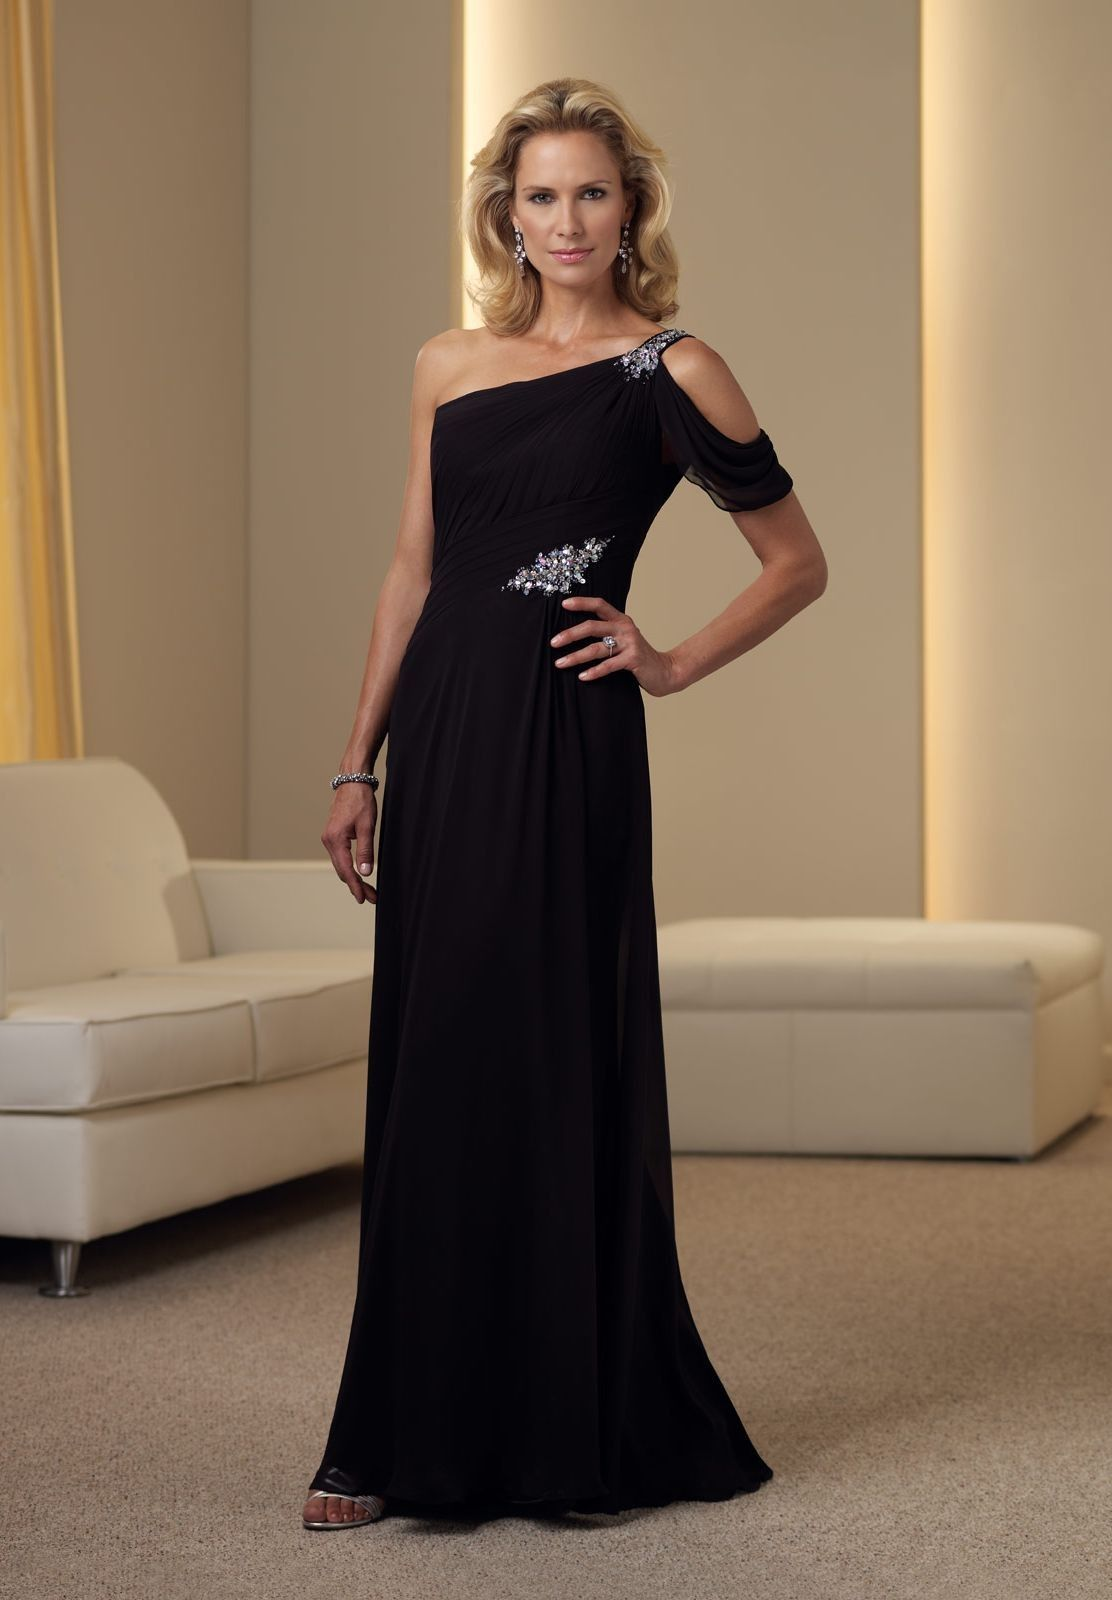 The Mother of Bride Dresses 2014